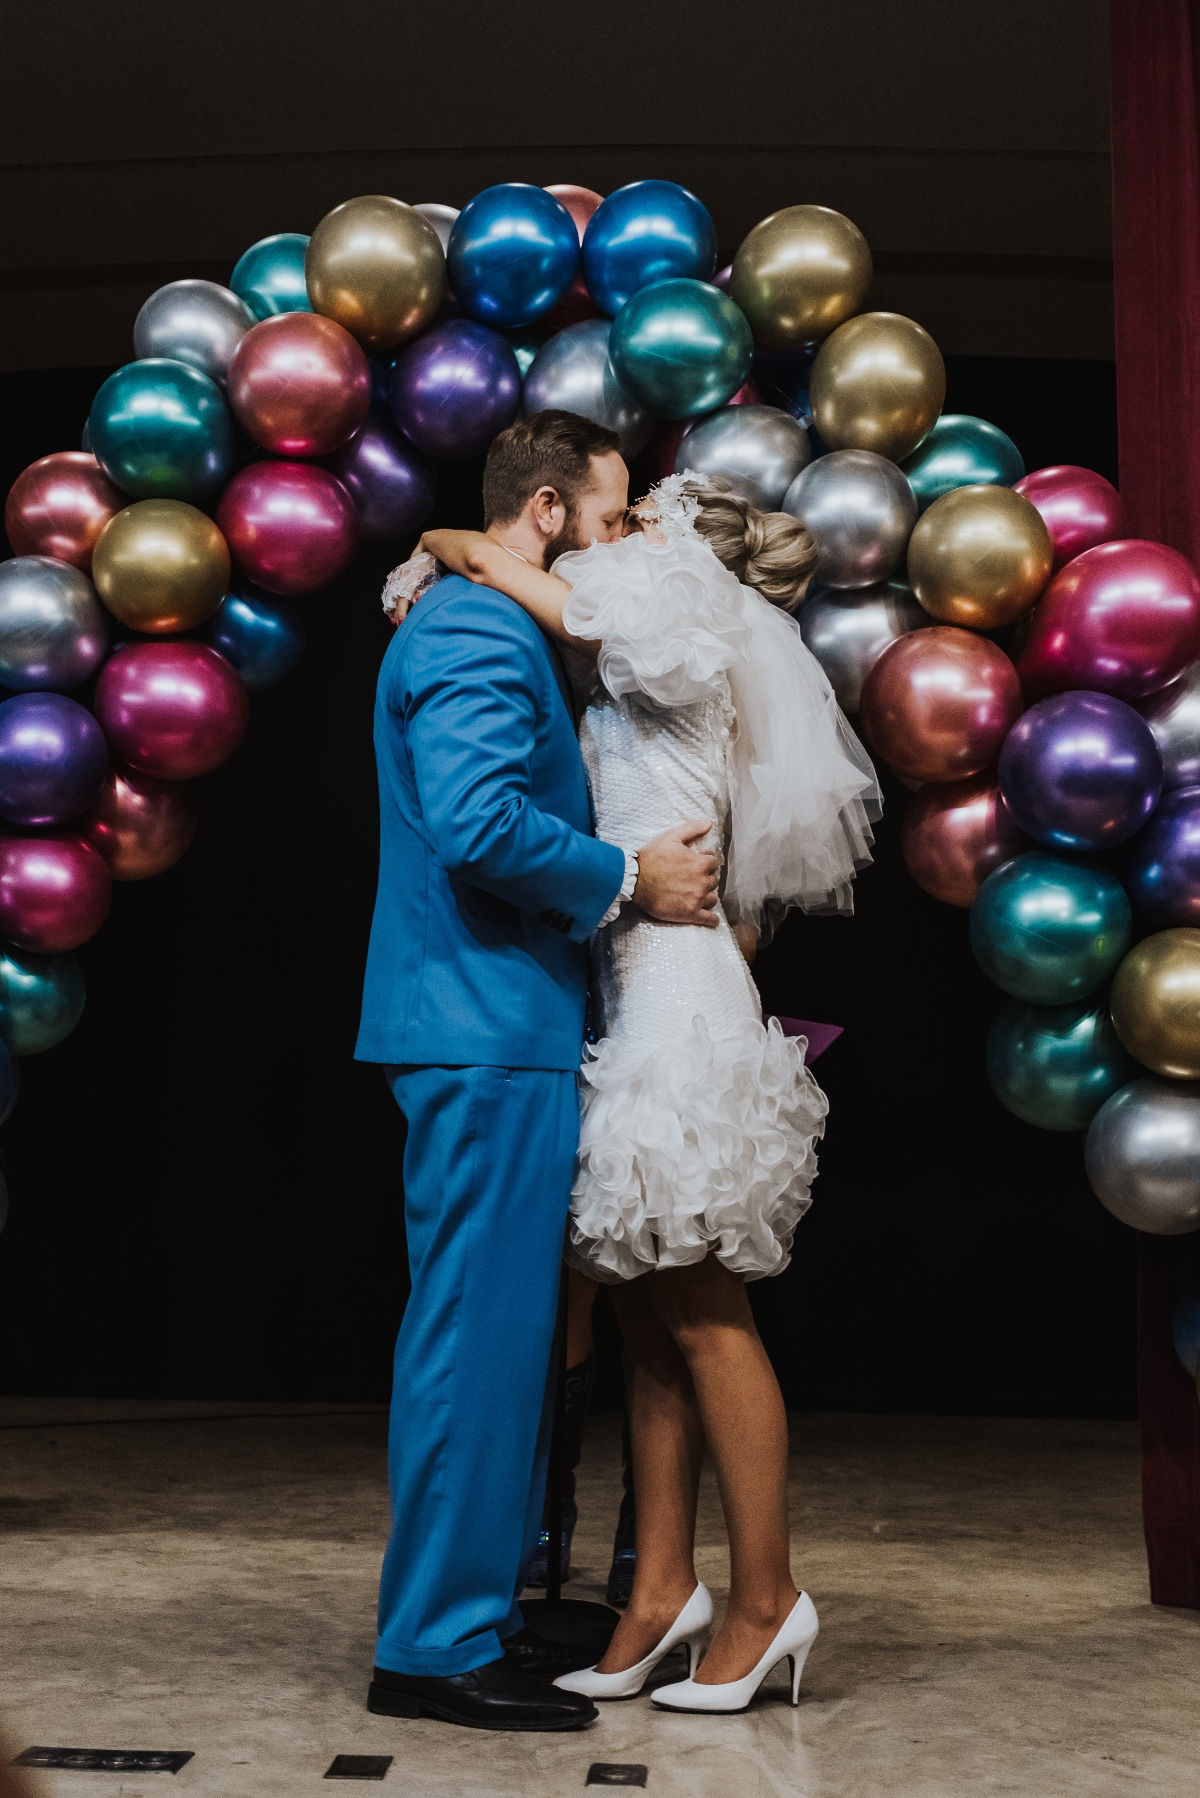 first kiss under a balloon arch at this 80's inspired costume wedding